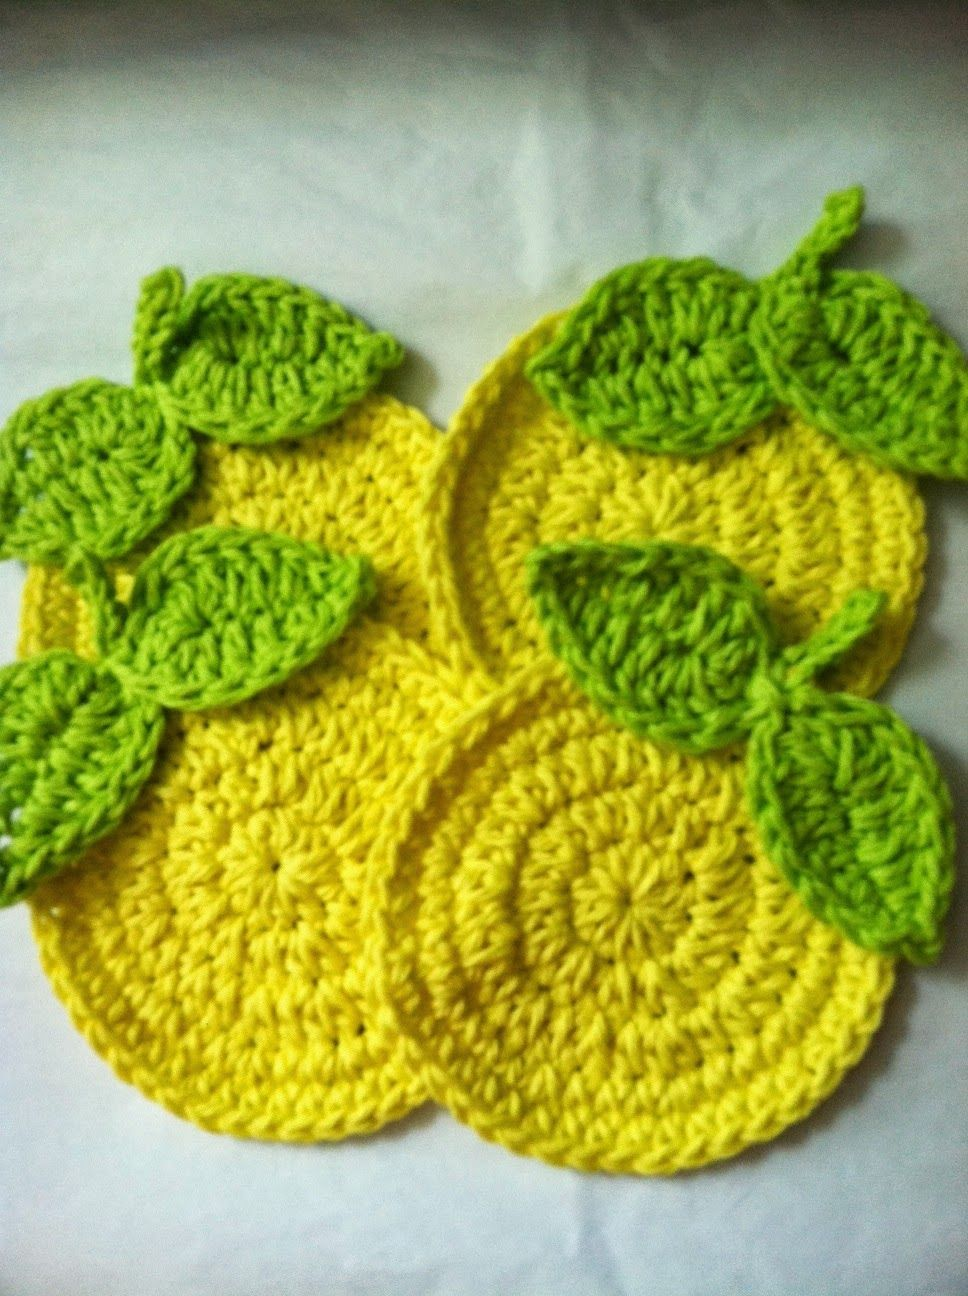 Lakeview Cottage Kids: Having So Much Fun Making Citrus Crochet ...